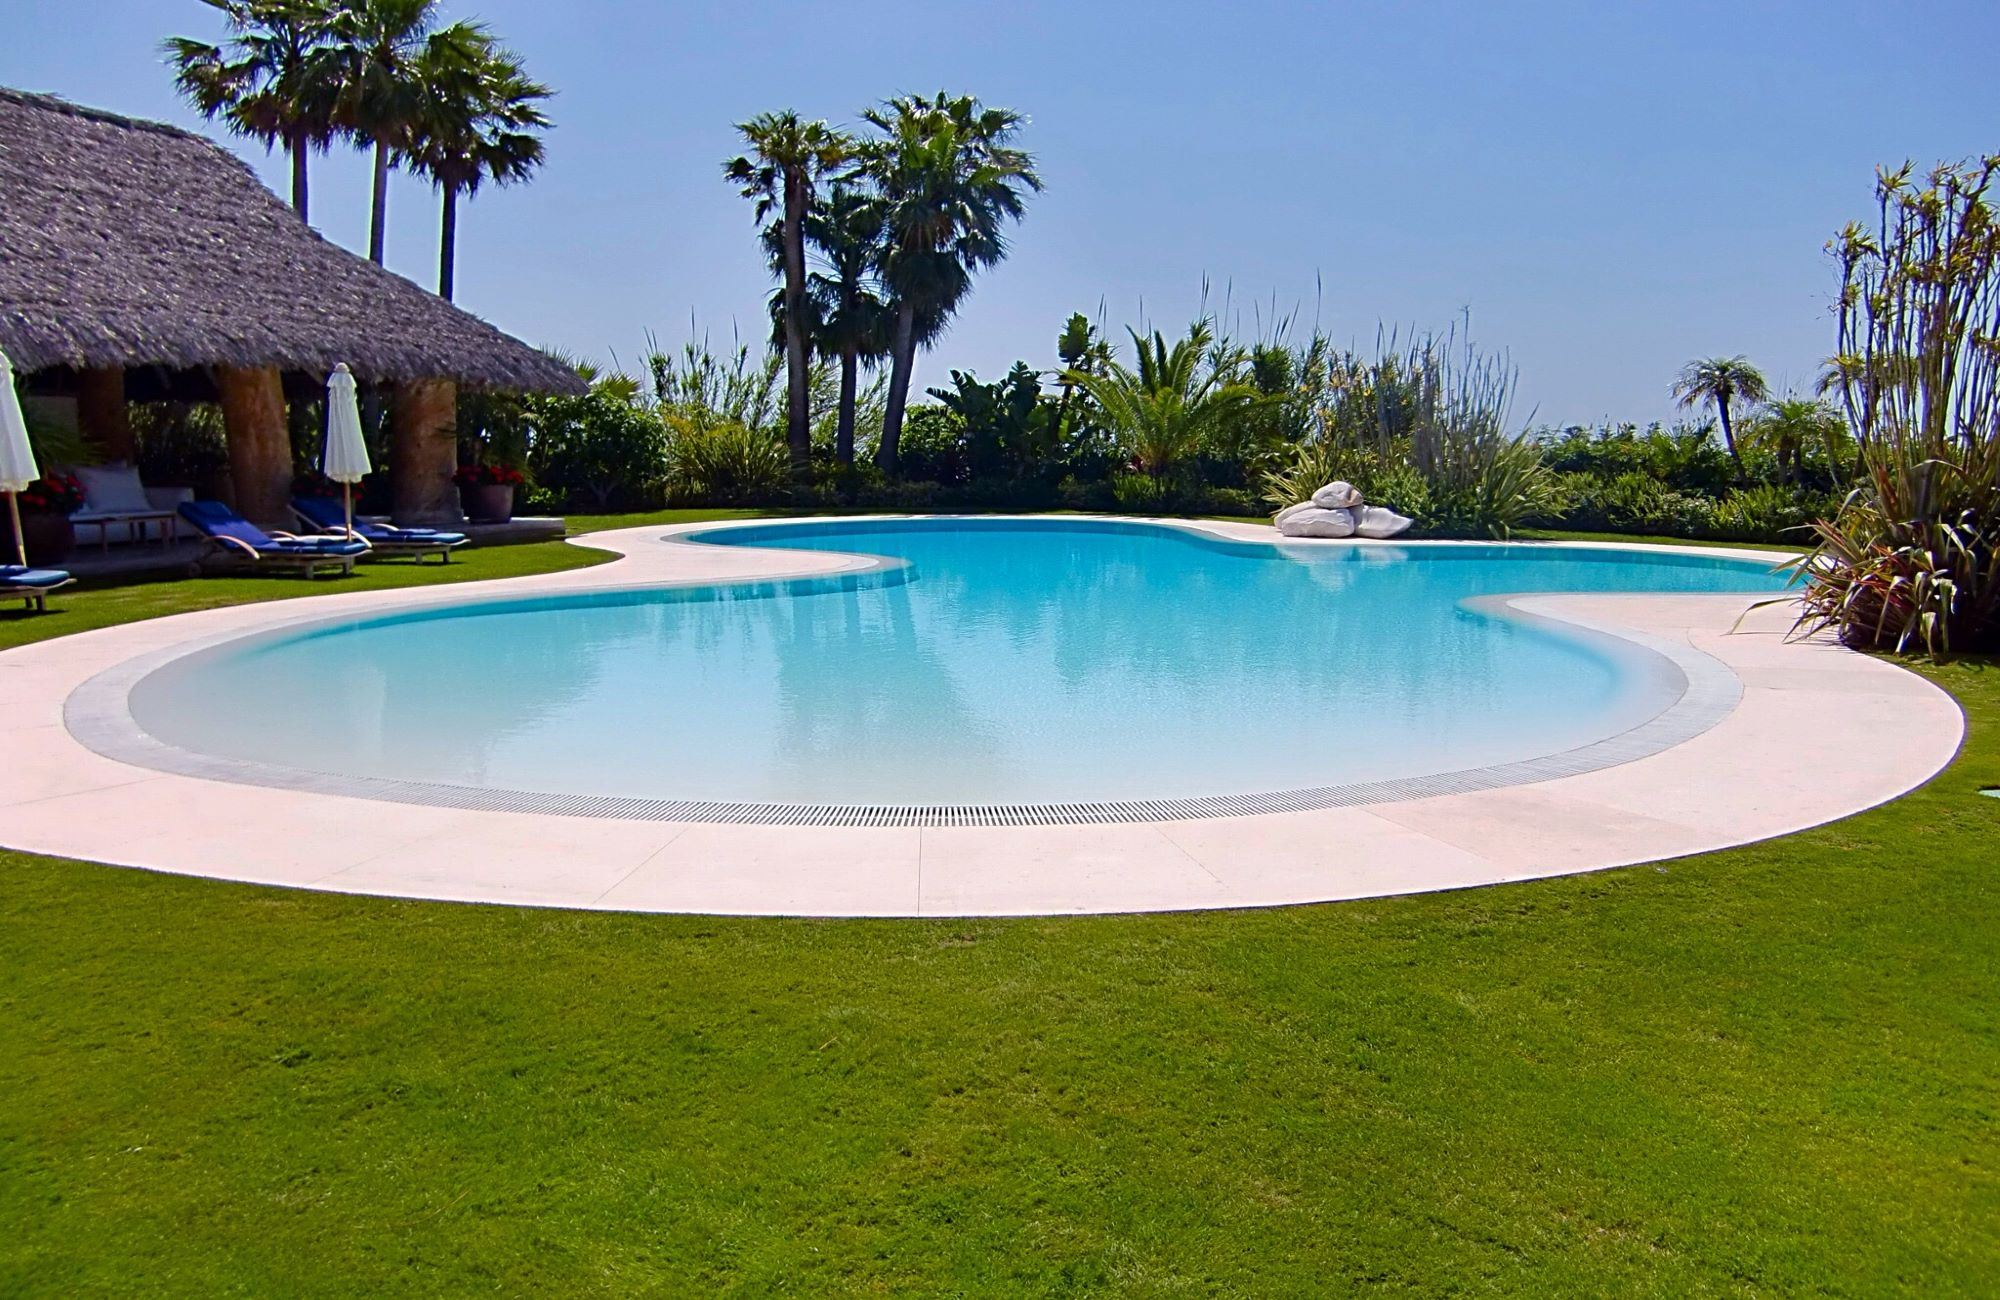 Sand swimming pools, create your own beach